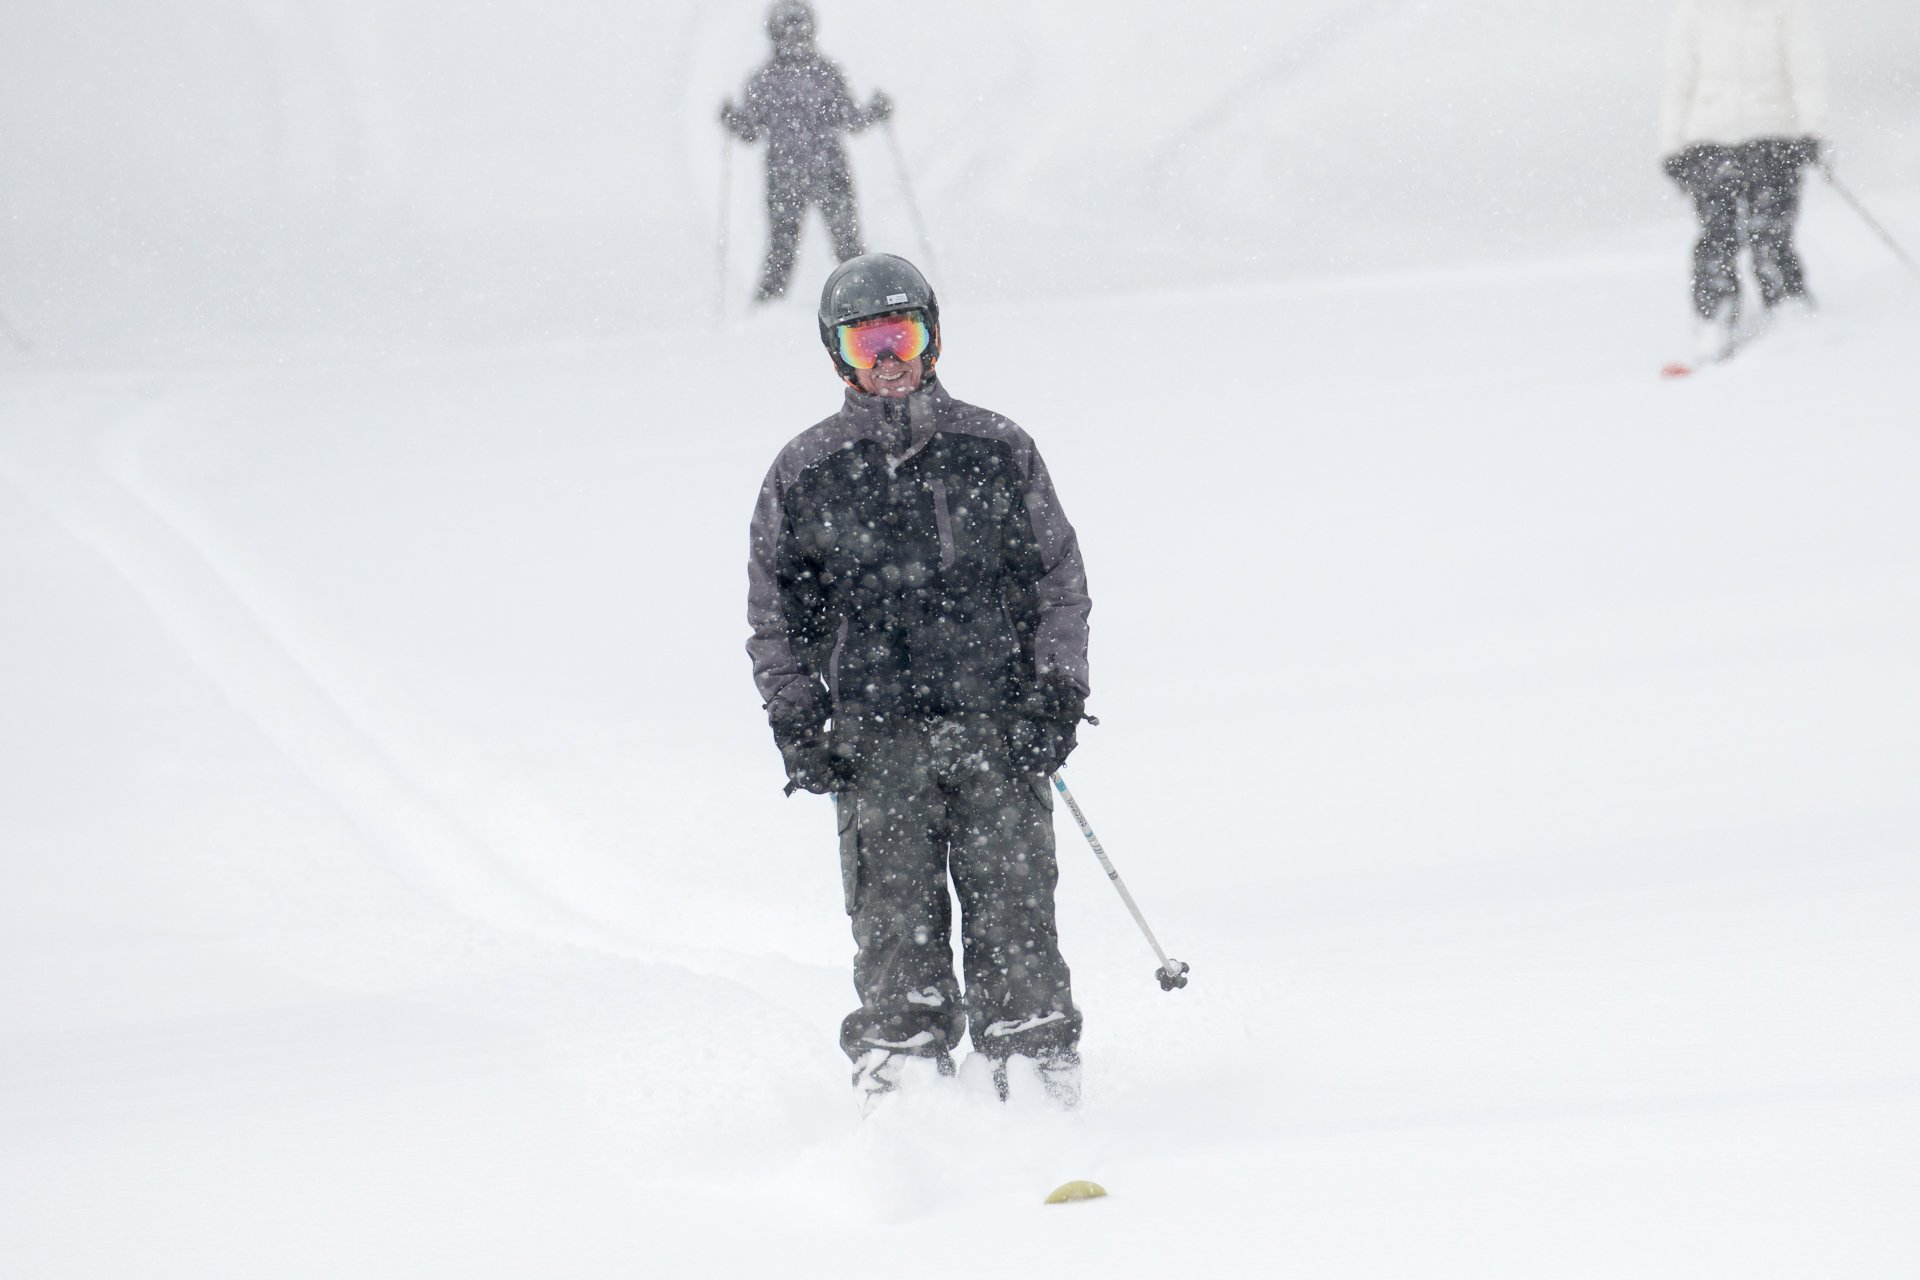 Avalanches wallop 2 California ski resorts in as many days